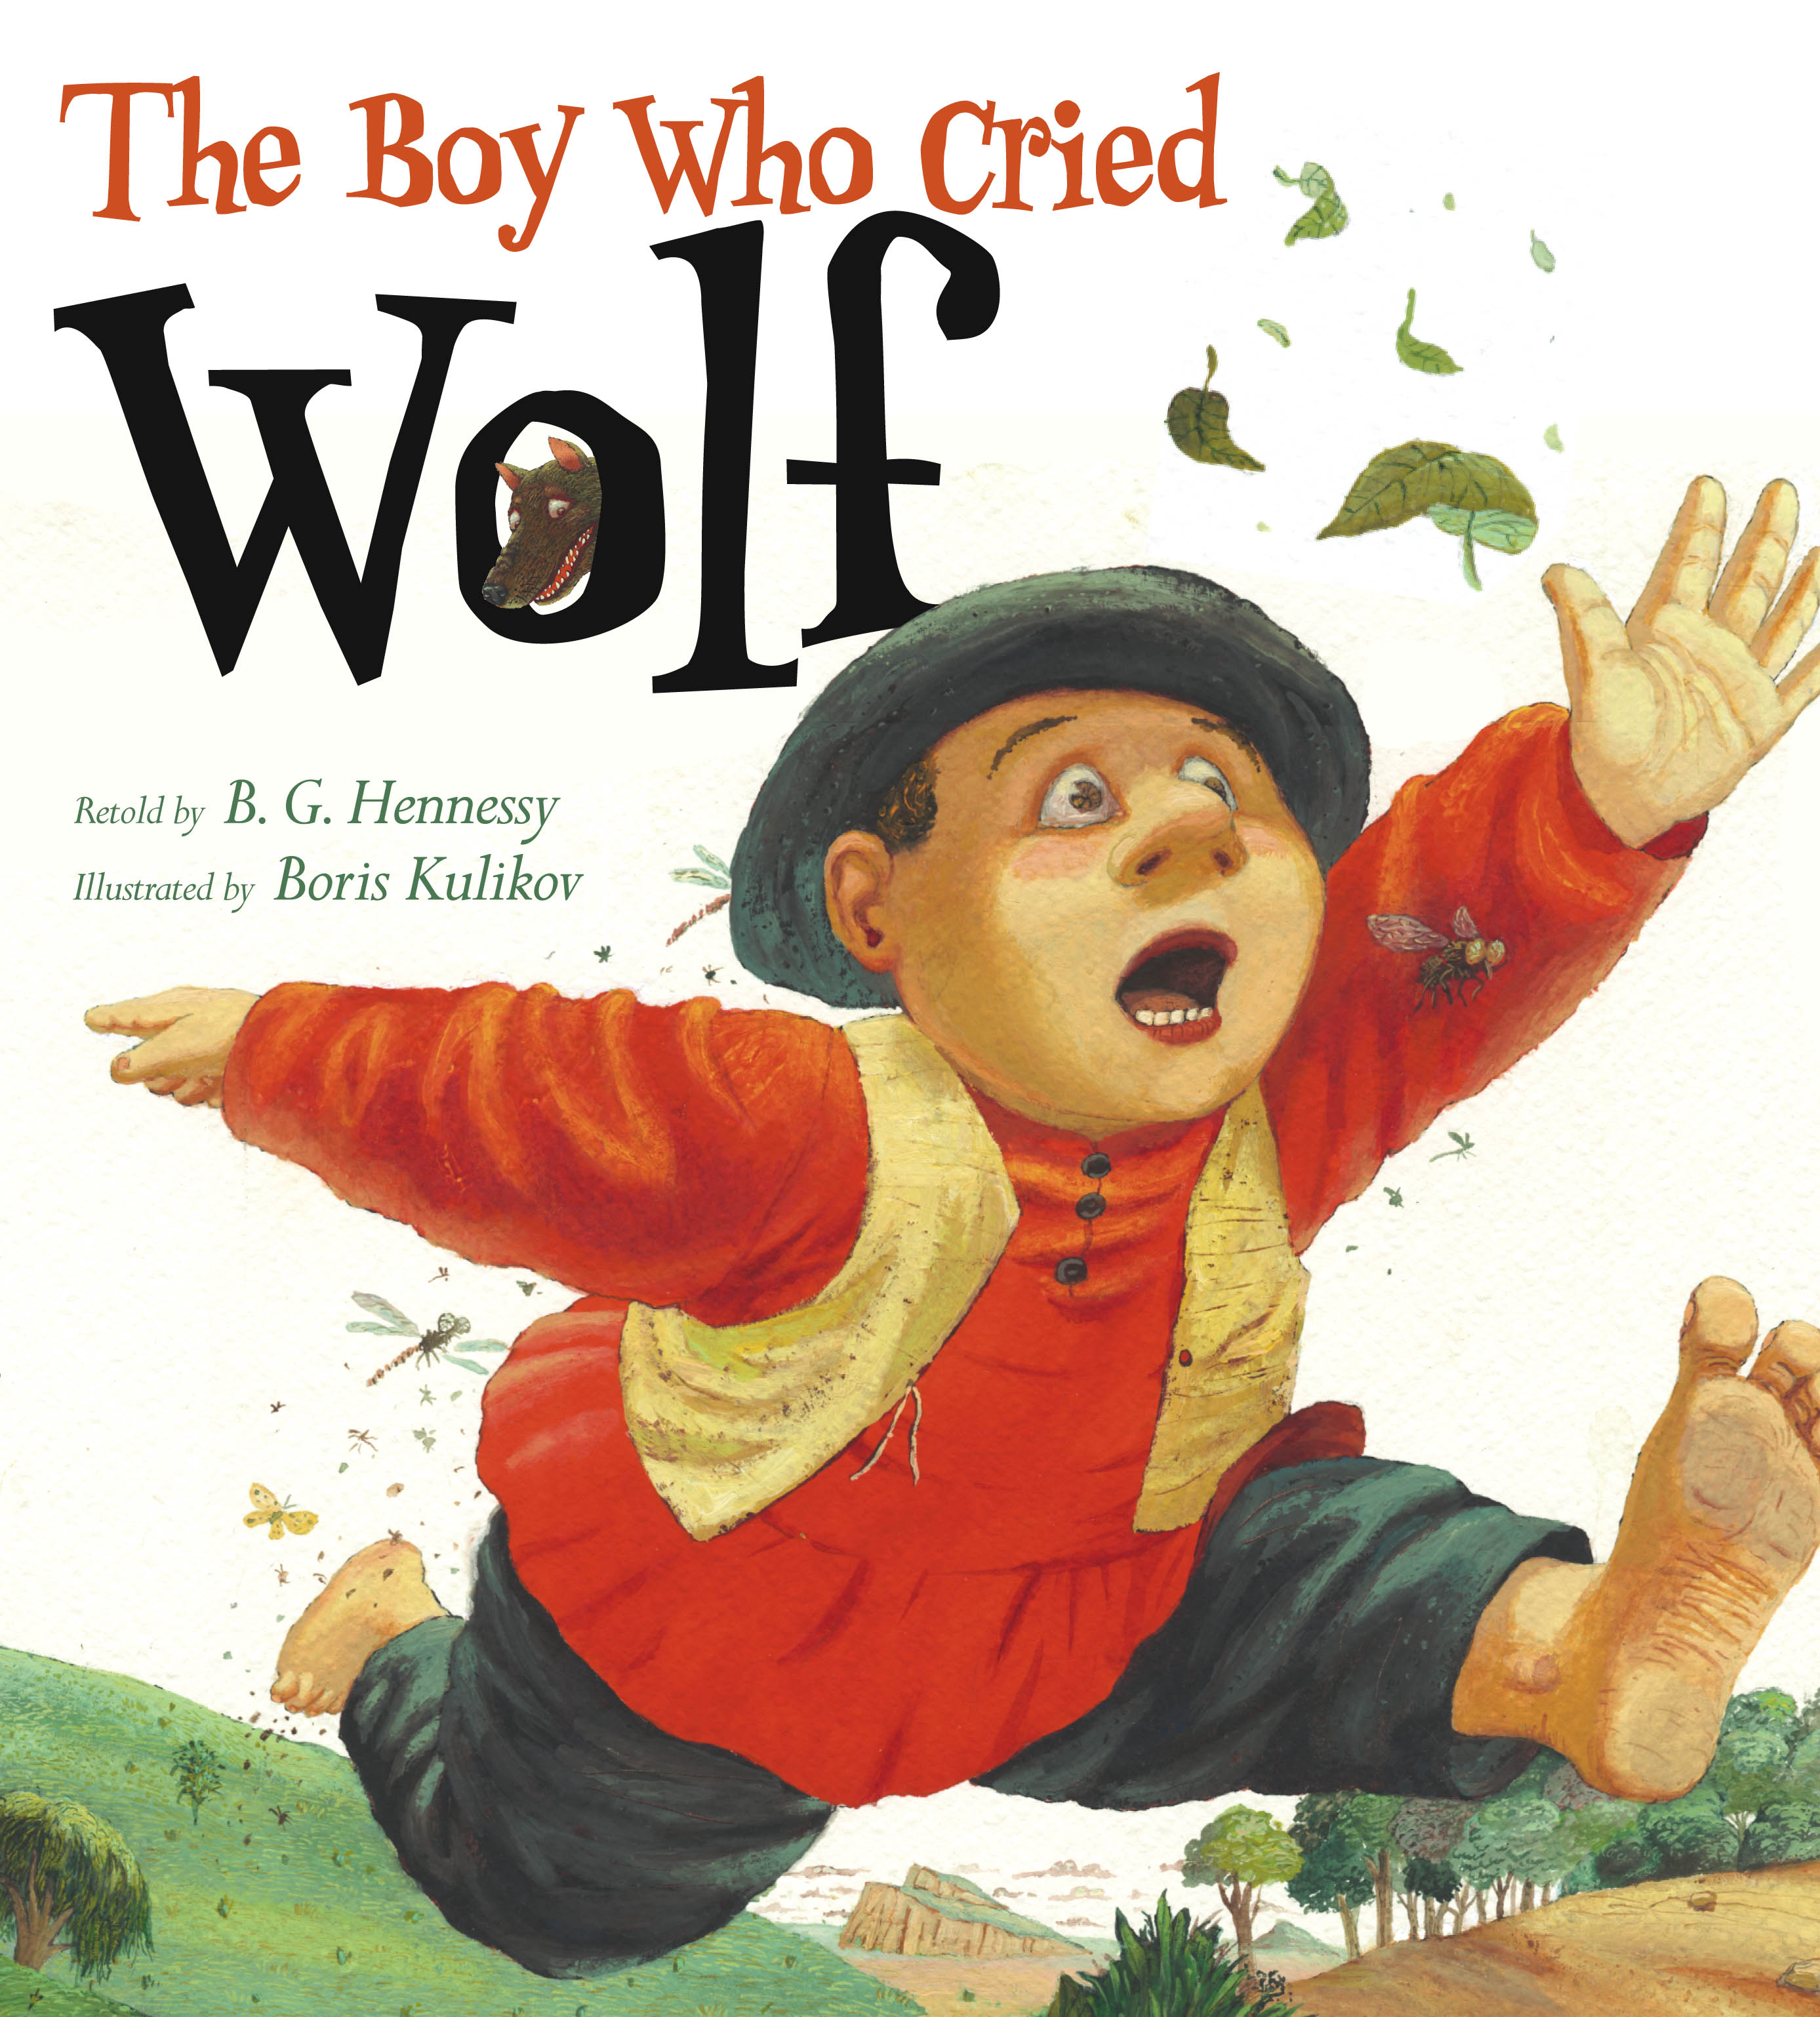 The Boy Who Cried Wolf.